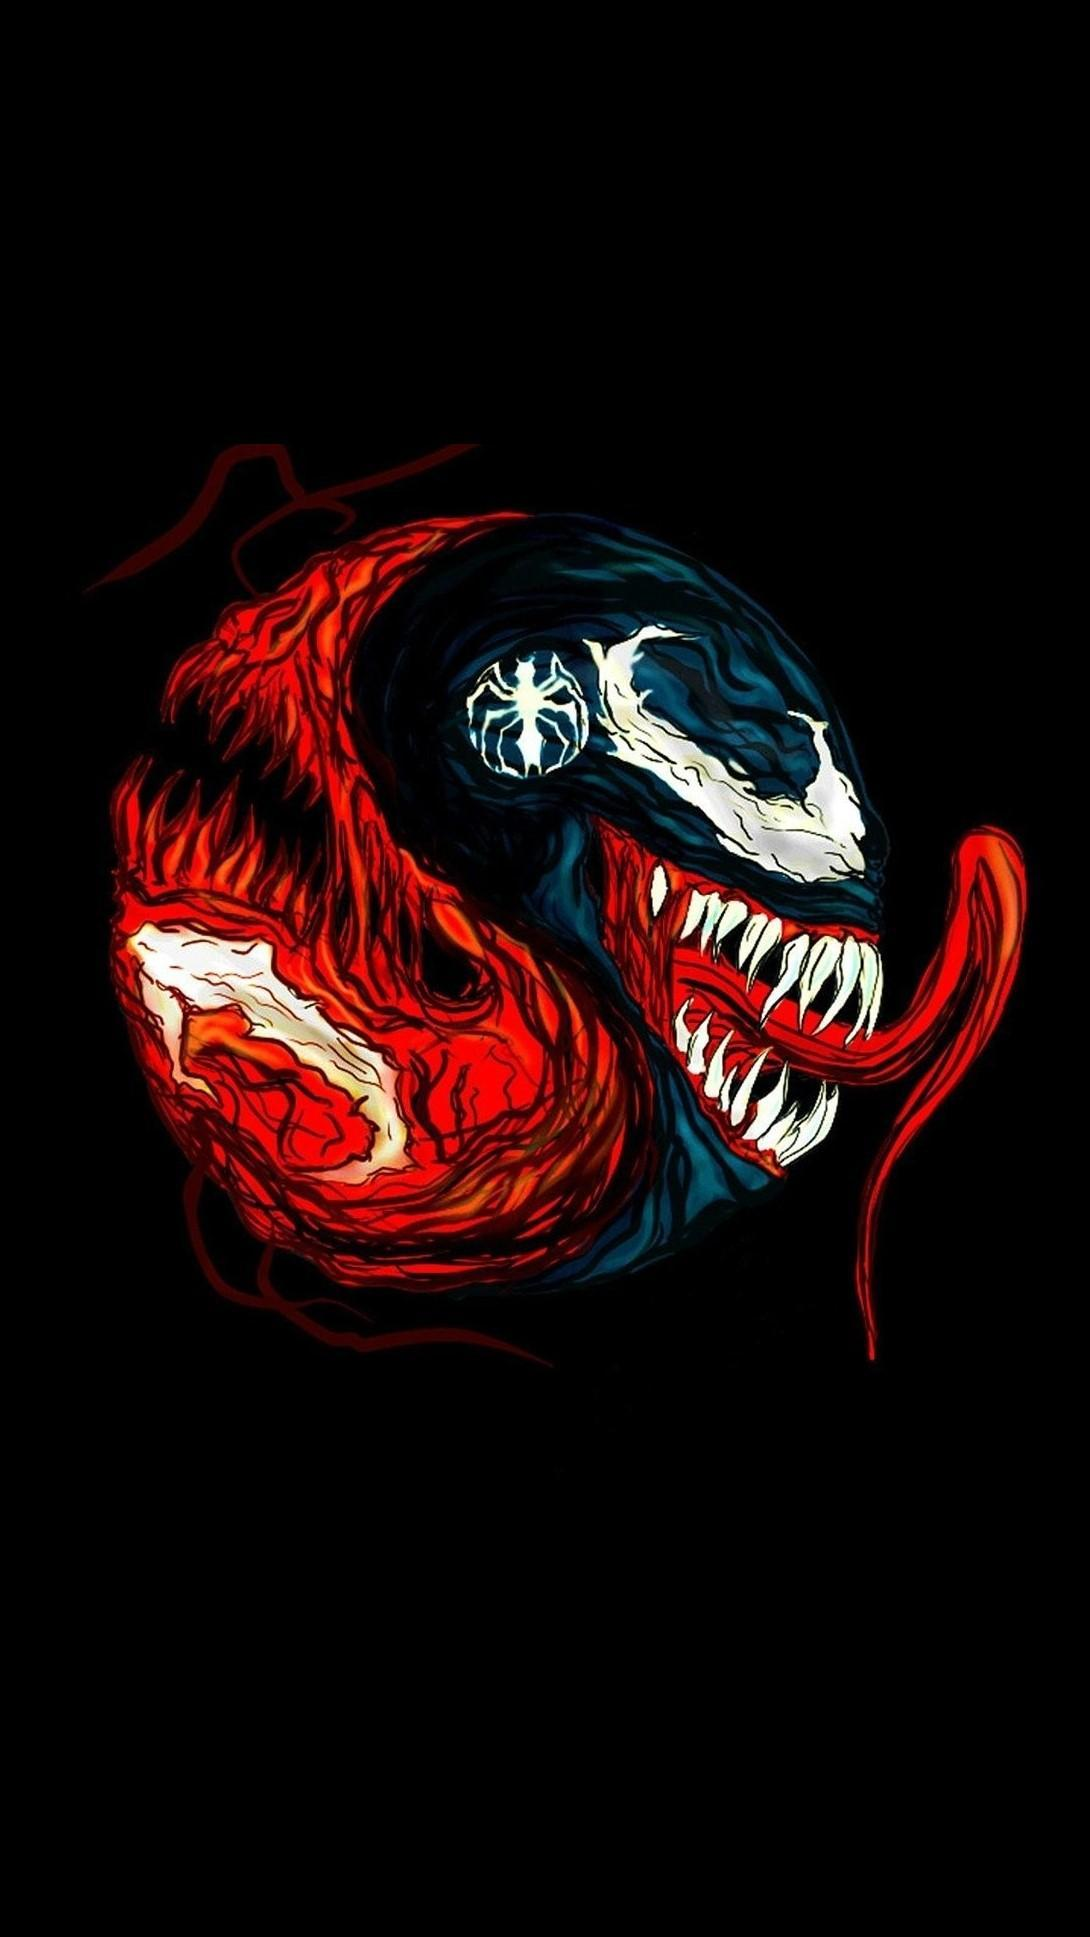 Venom Hd Wallpapers For Android Apk Download